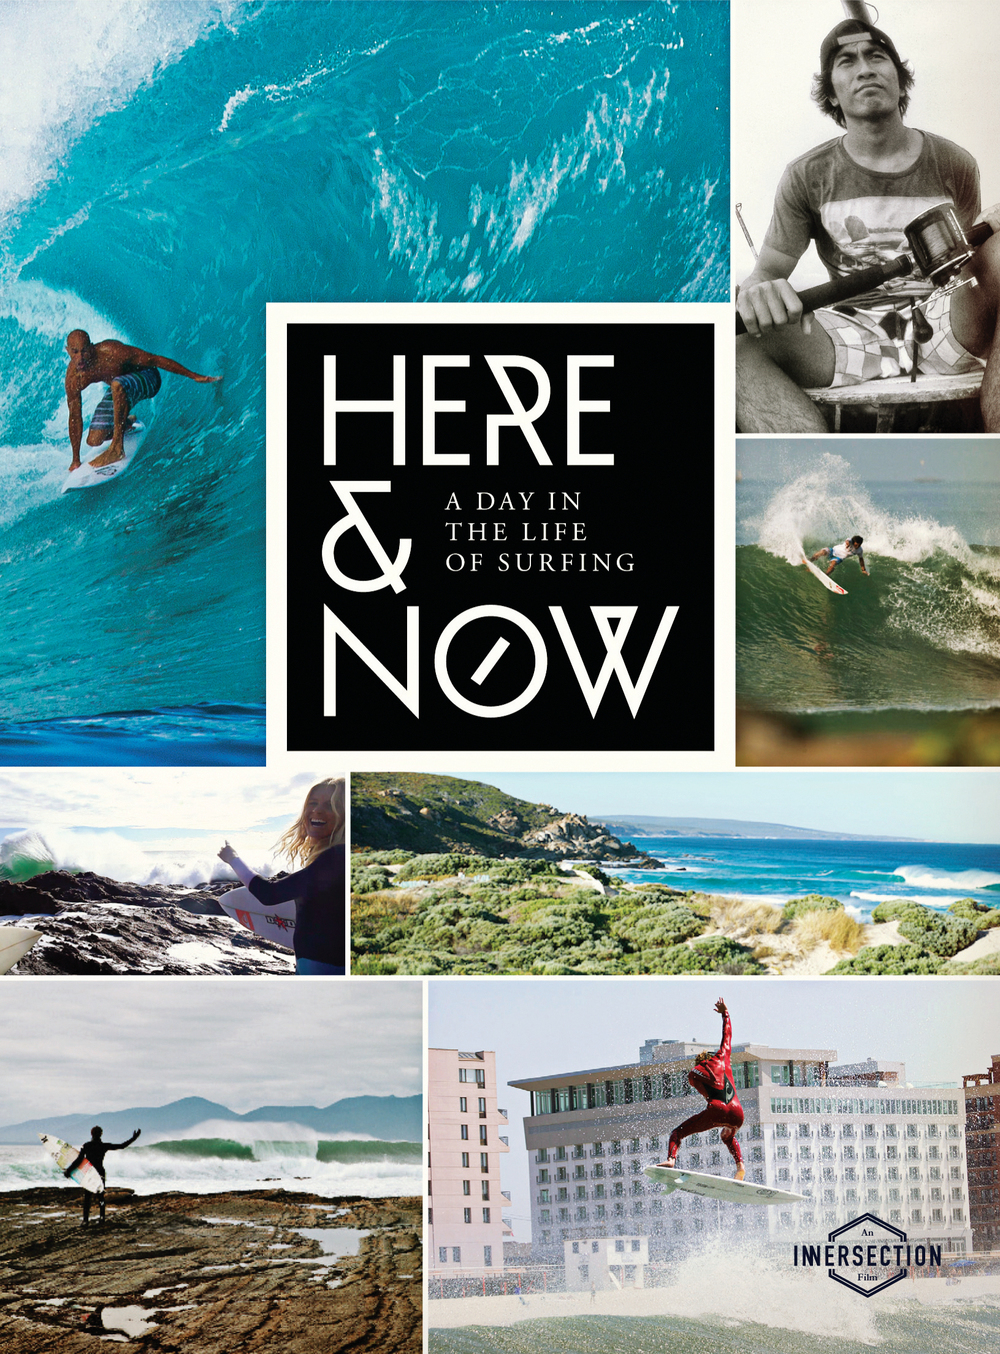 Here & Now A Taylor Steele Movie